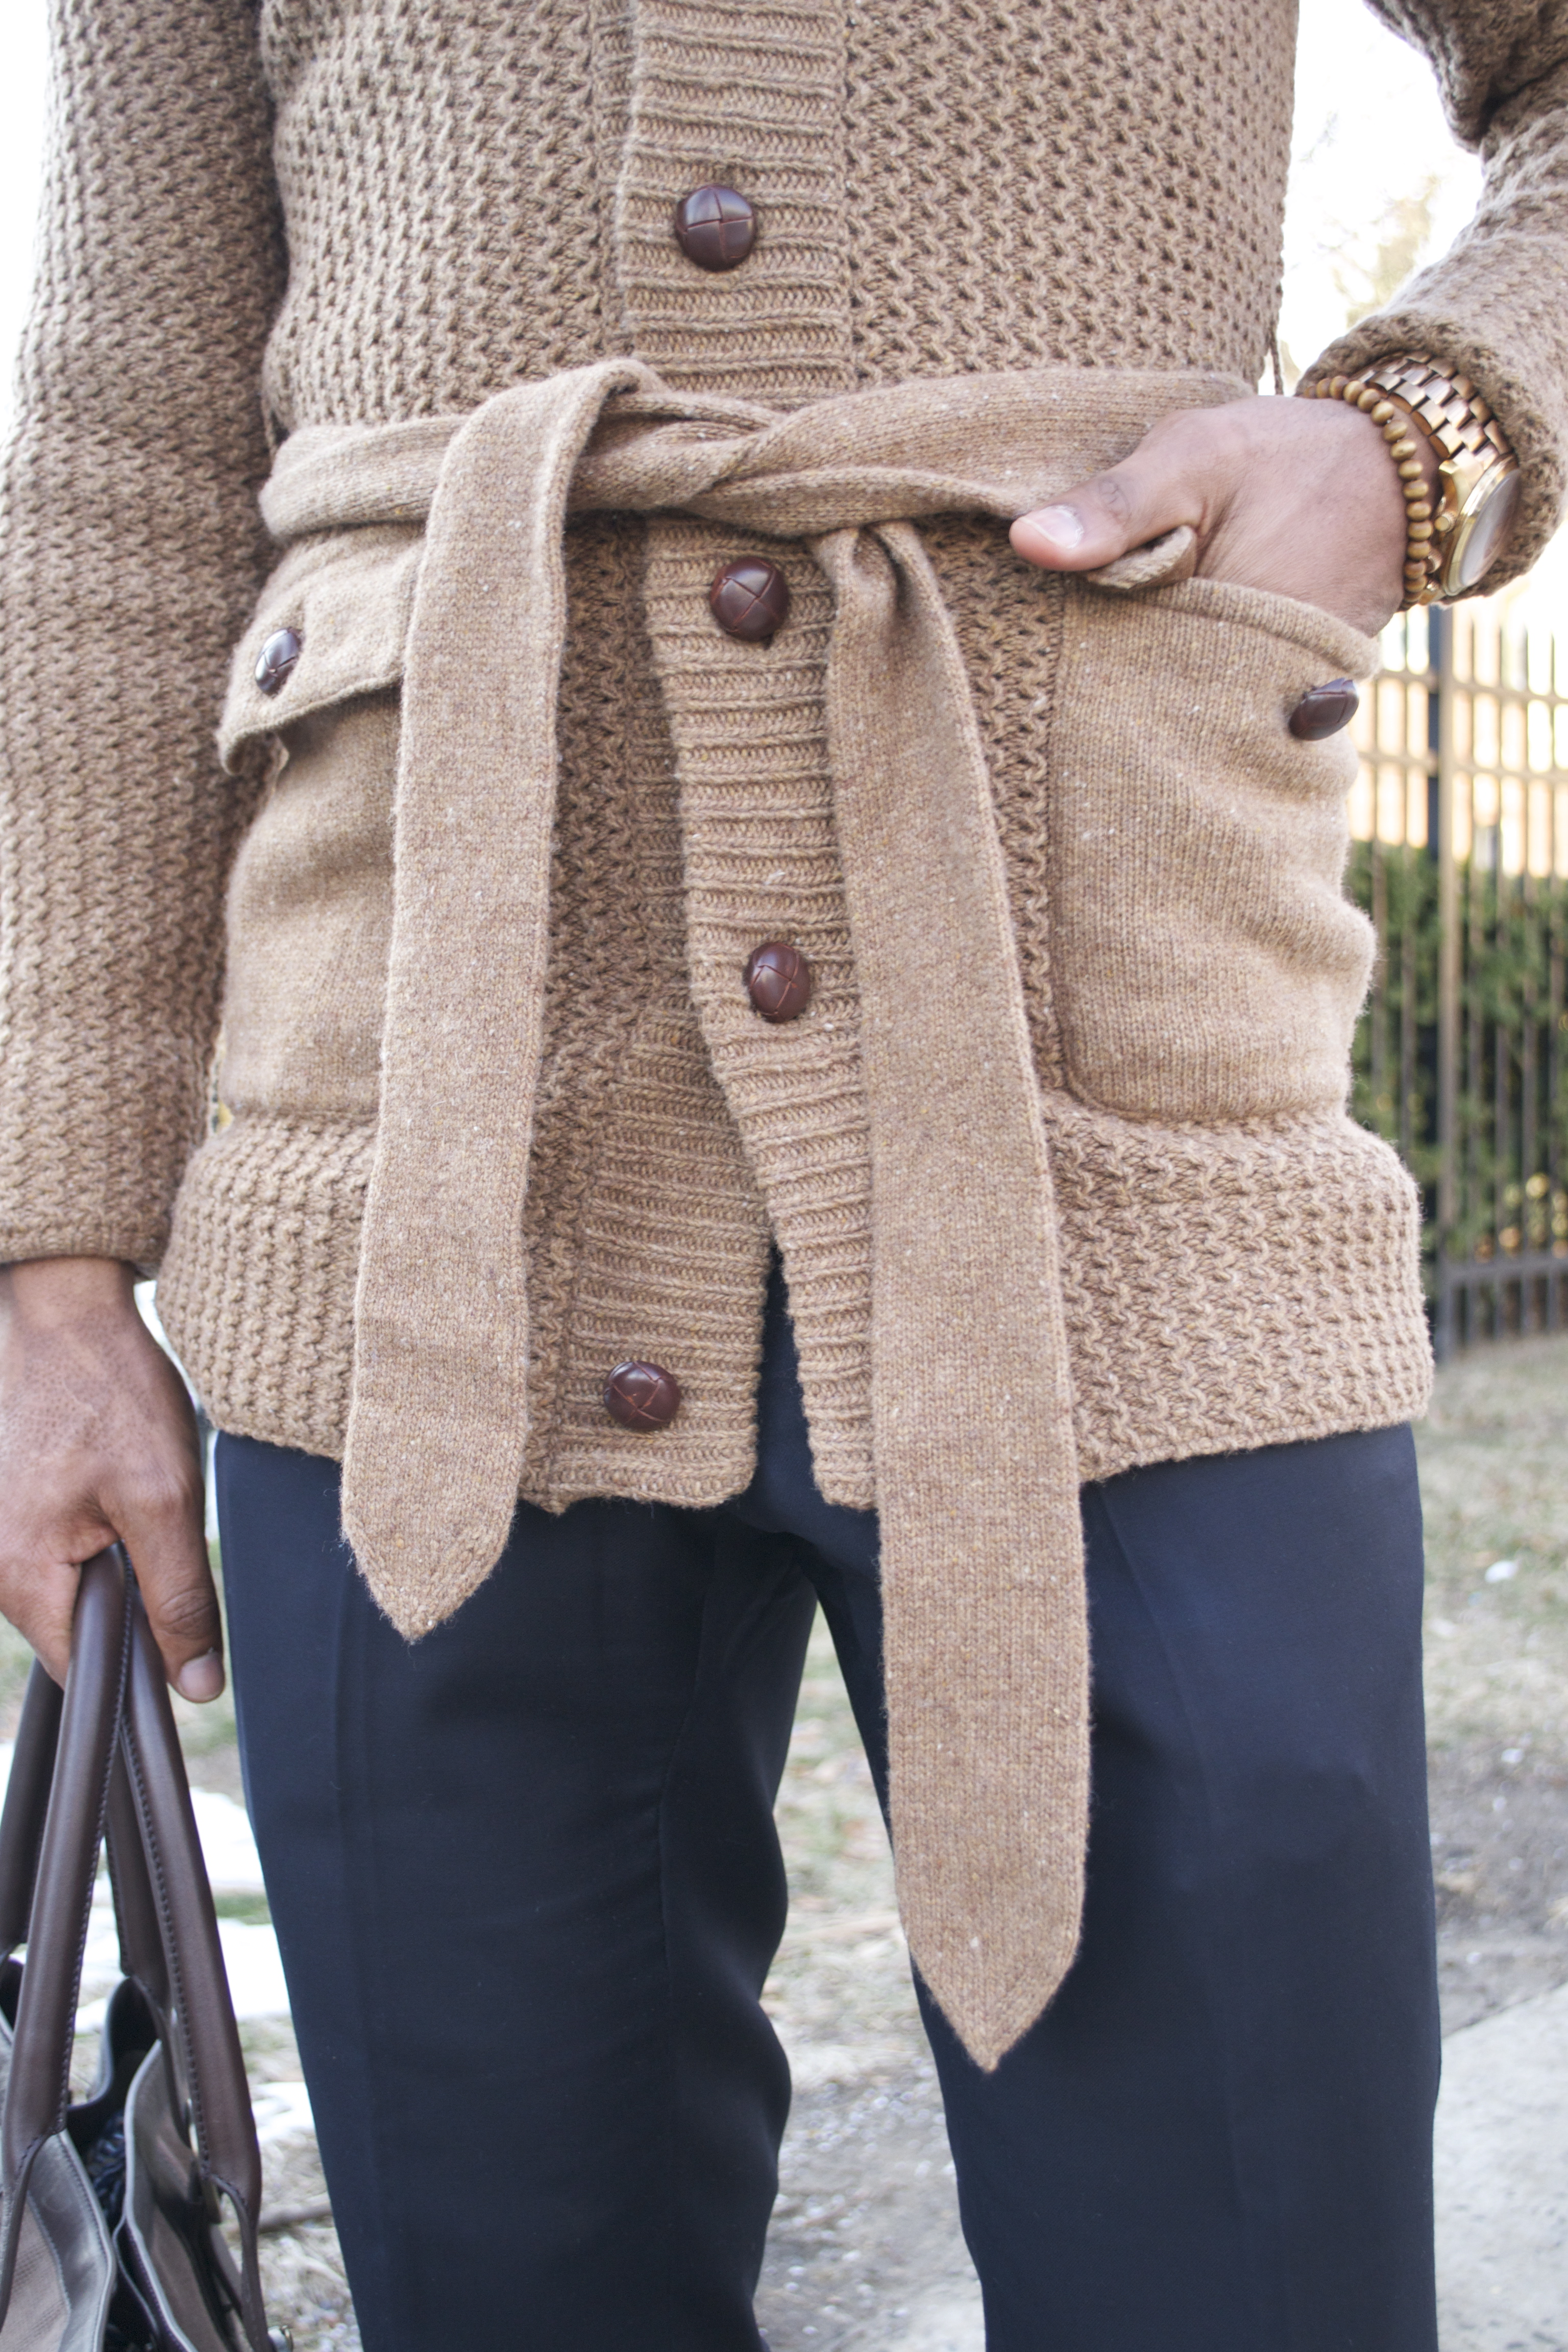 How To: Wear Cardigans As Outerwear | Men's Style Pro